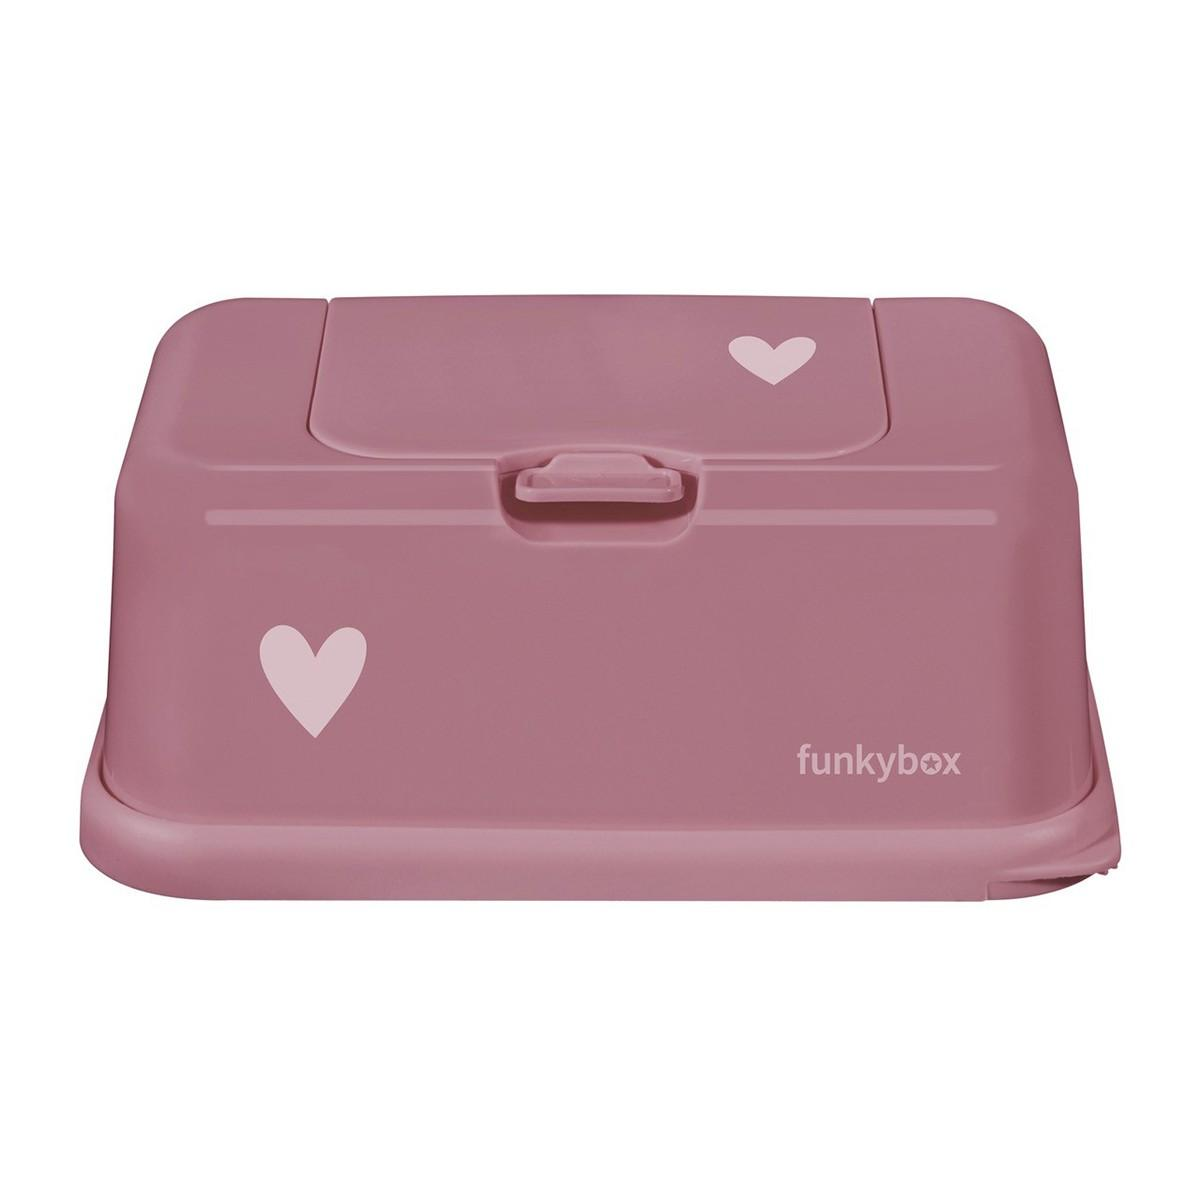 FunkyBox - Punch pink heart